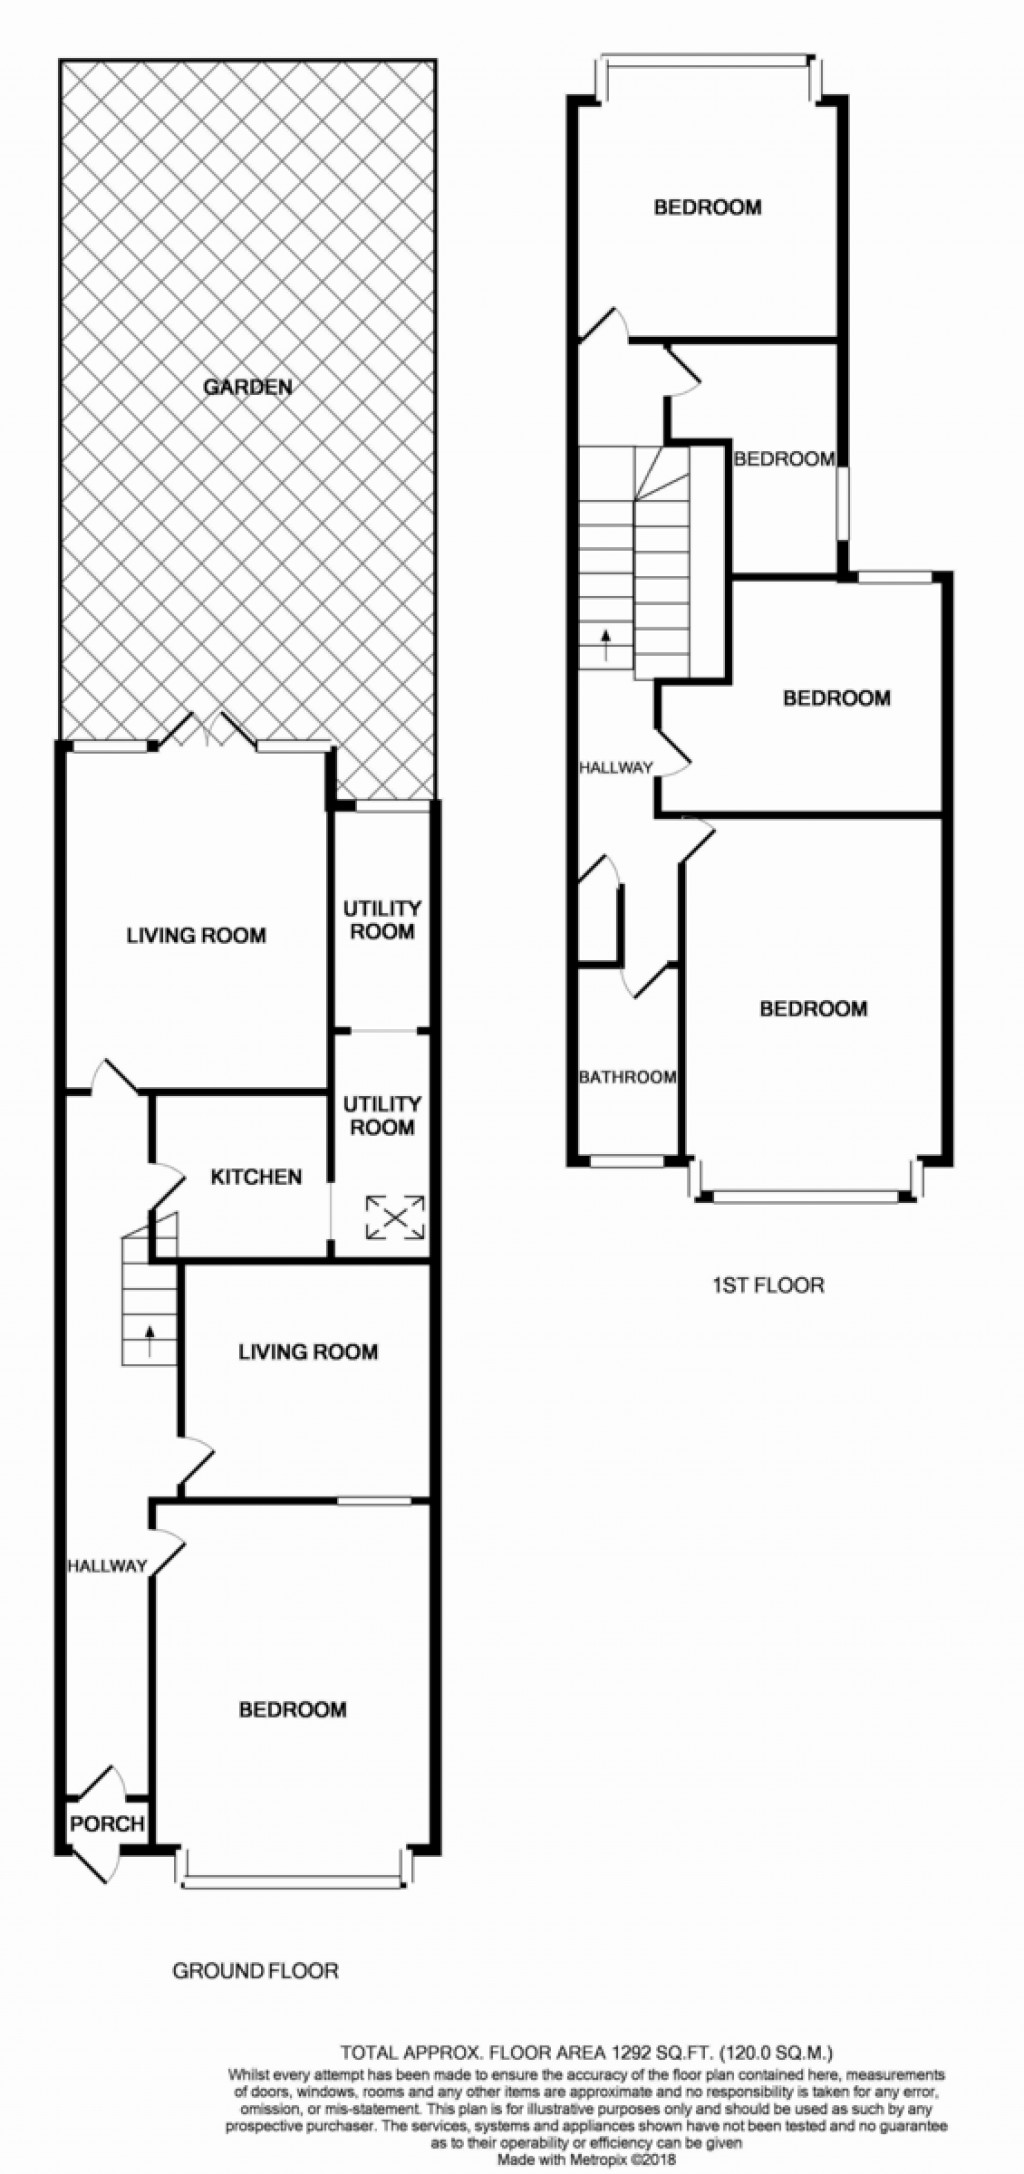 Floorplans For Boreham Road, London